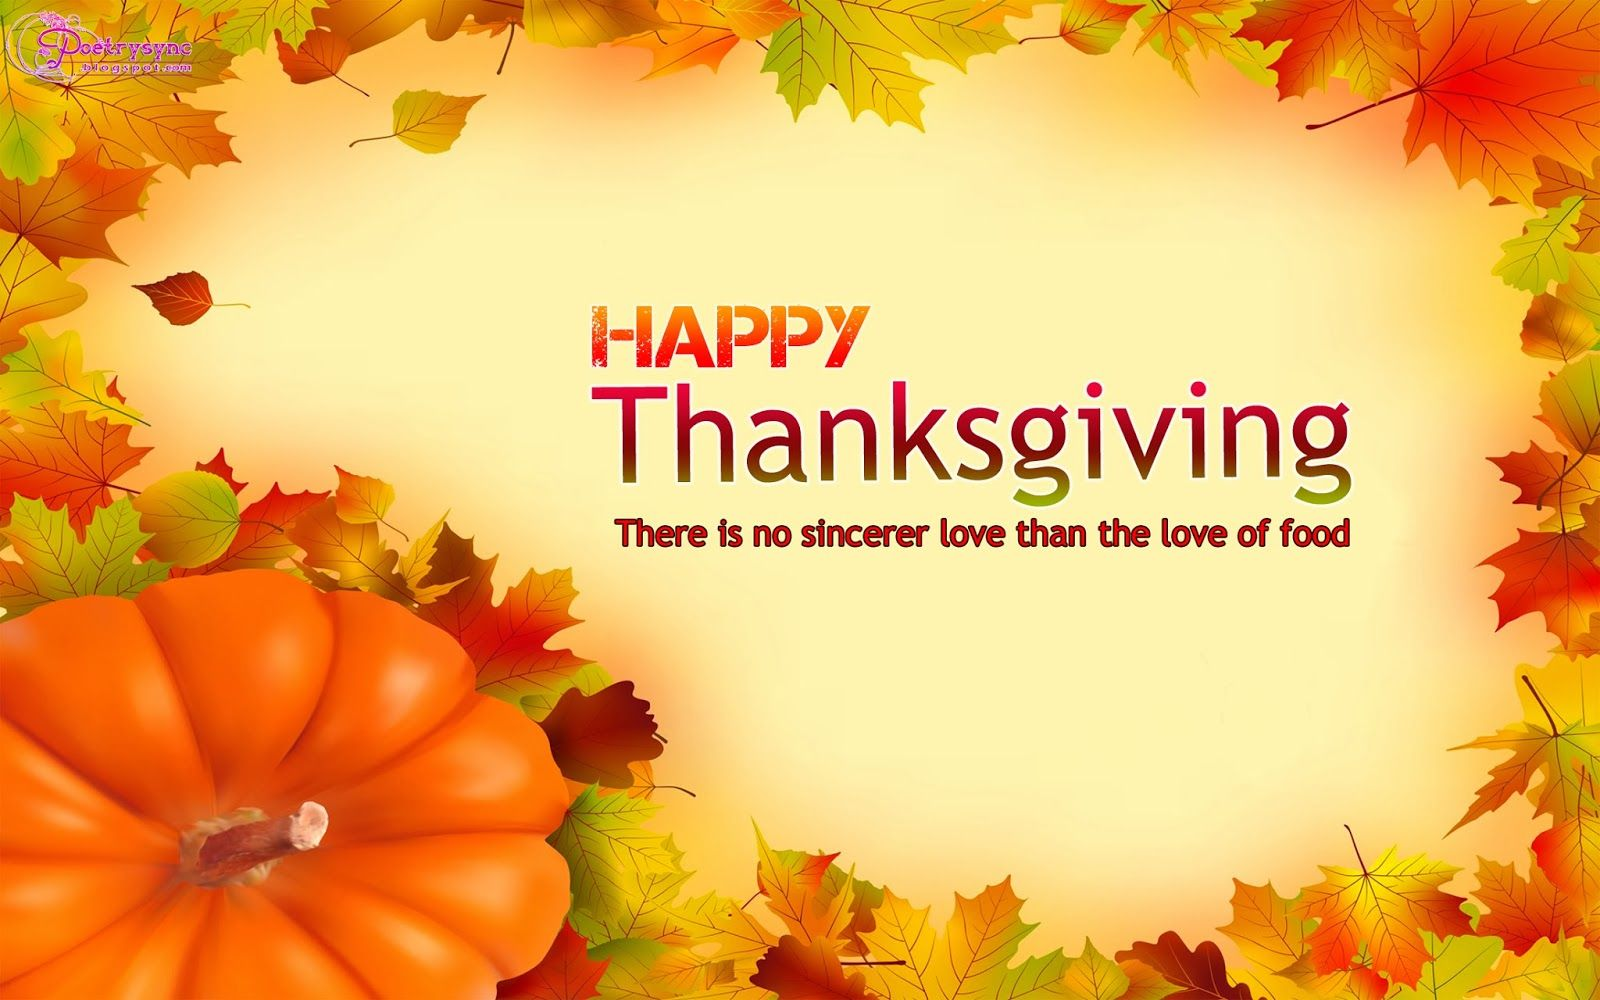 Thanksgiving Turkey Day Wishes | Thanksgiving Day ...